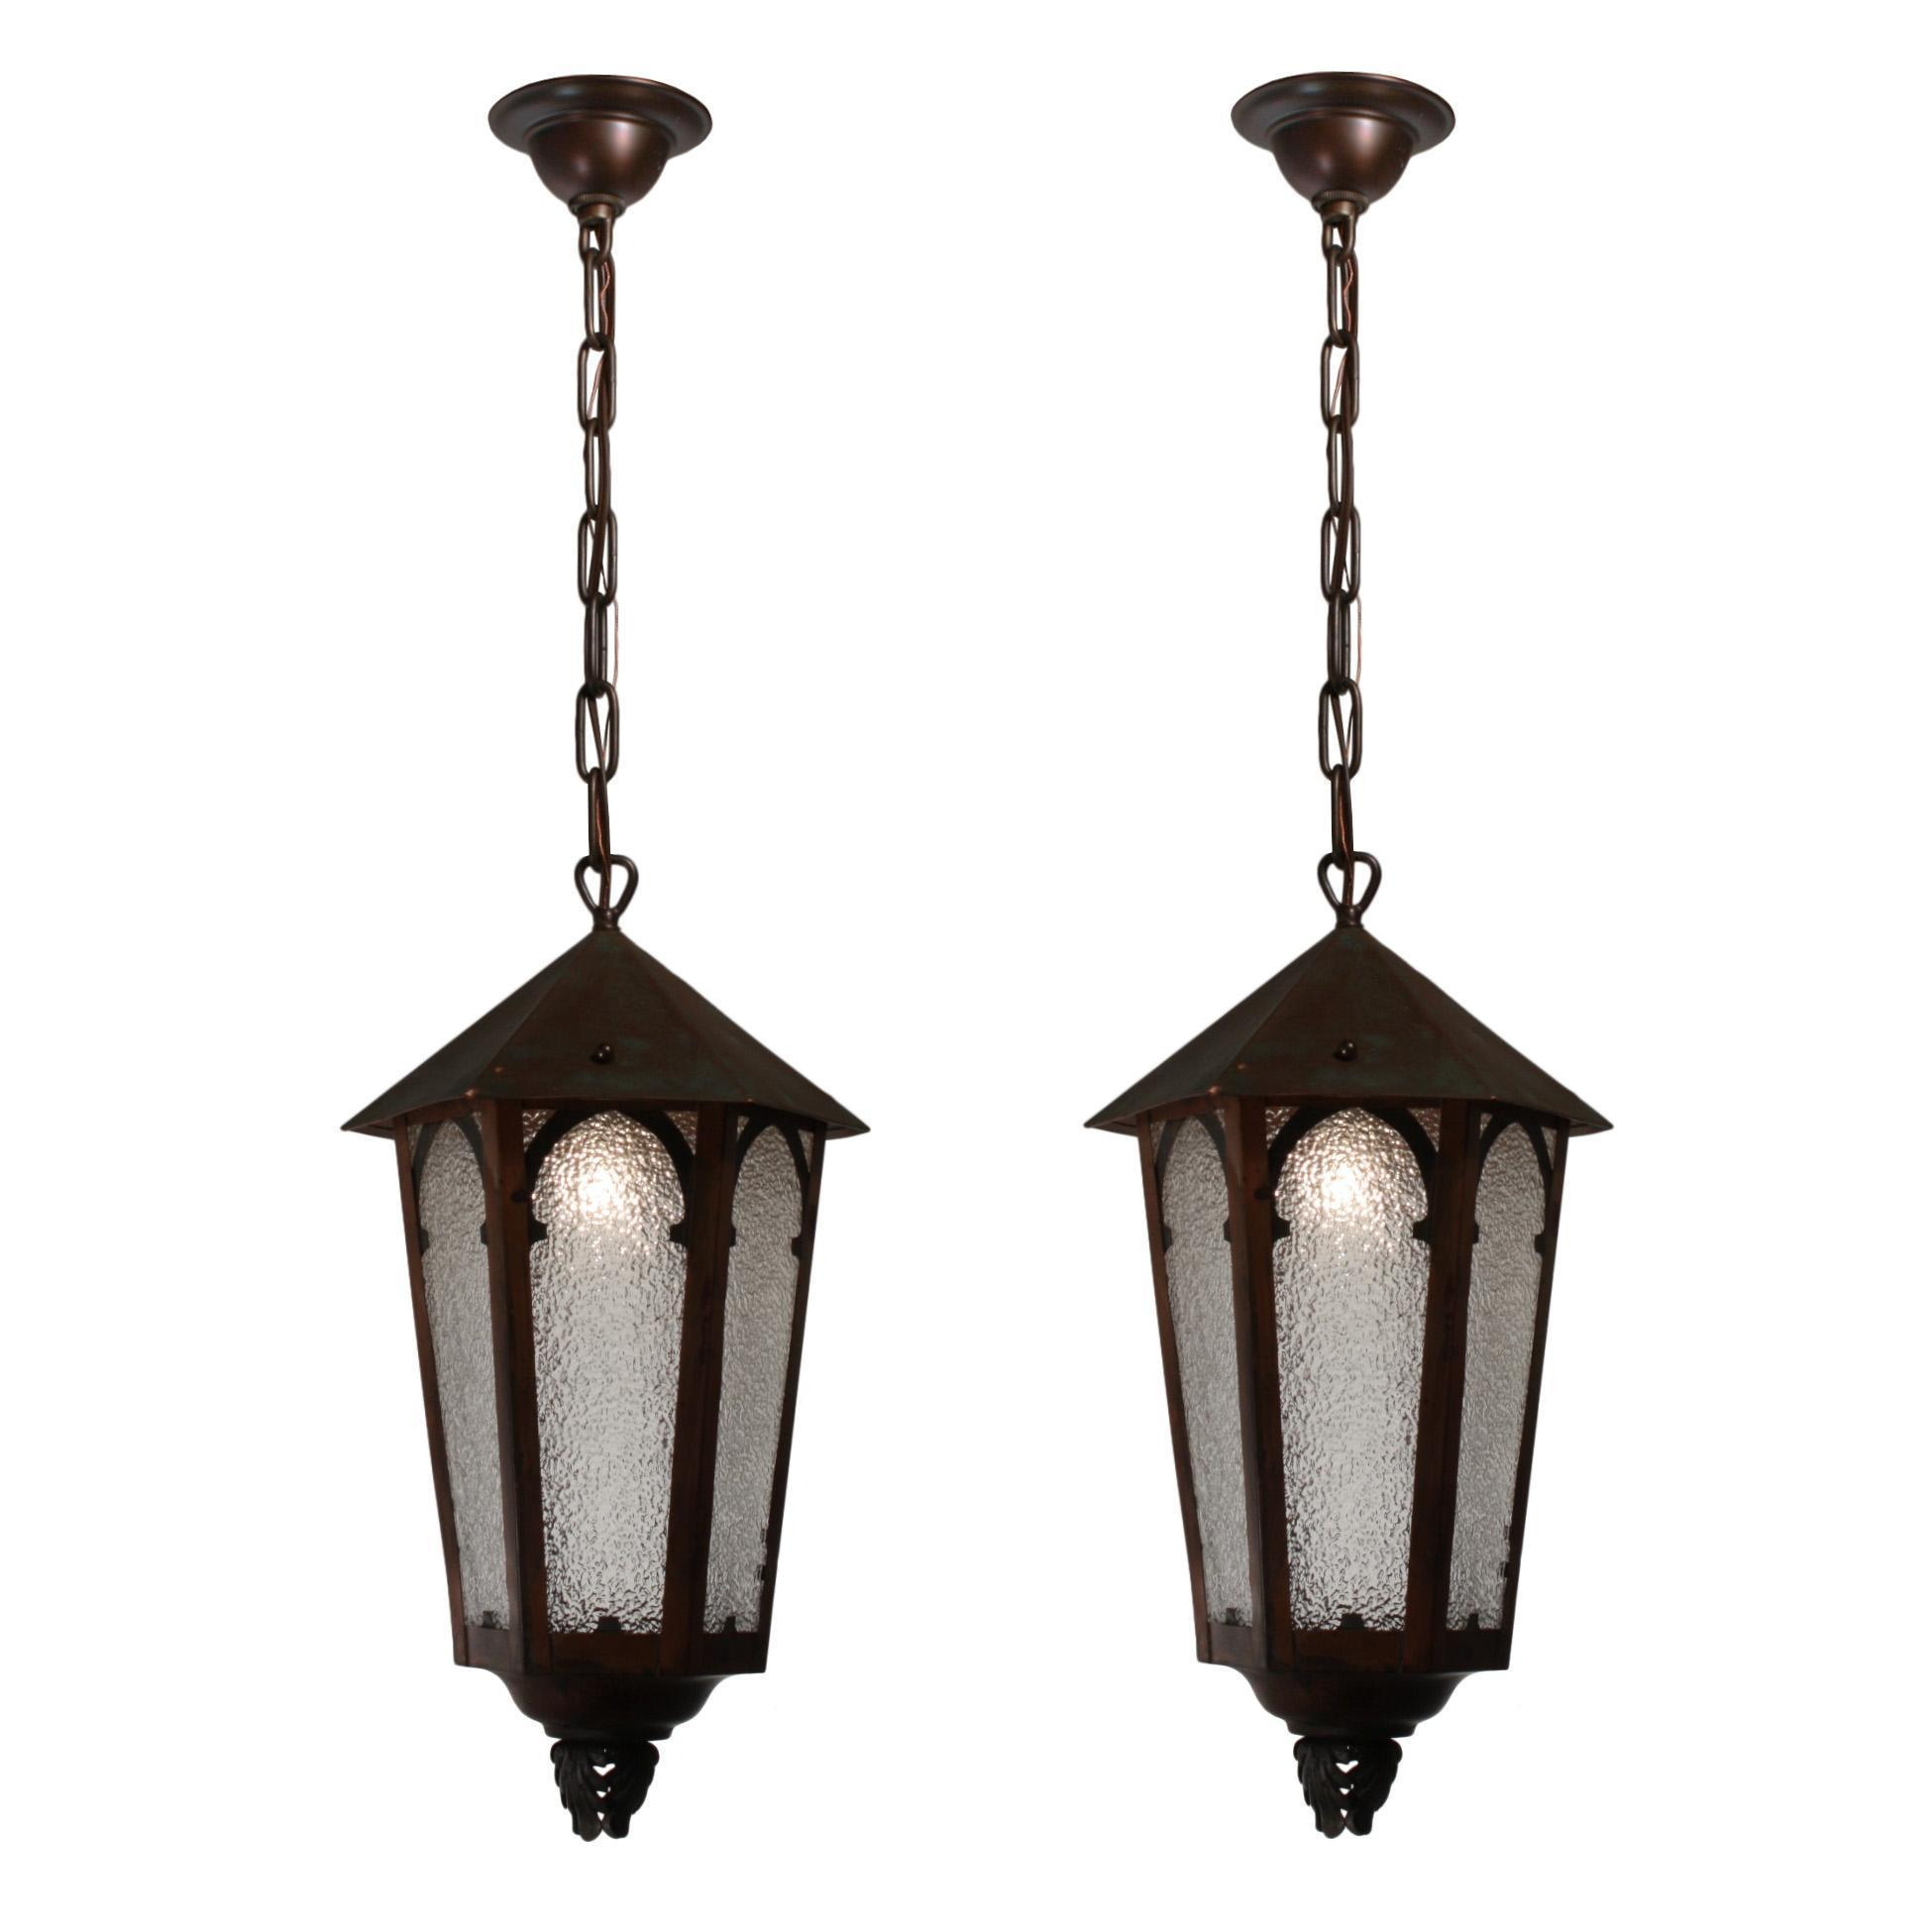 Charming Antique Gothic Revival Copper Lanterns, c.1910